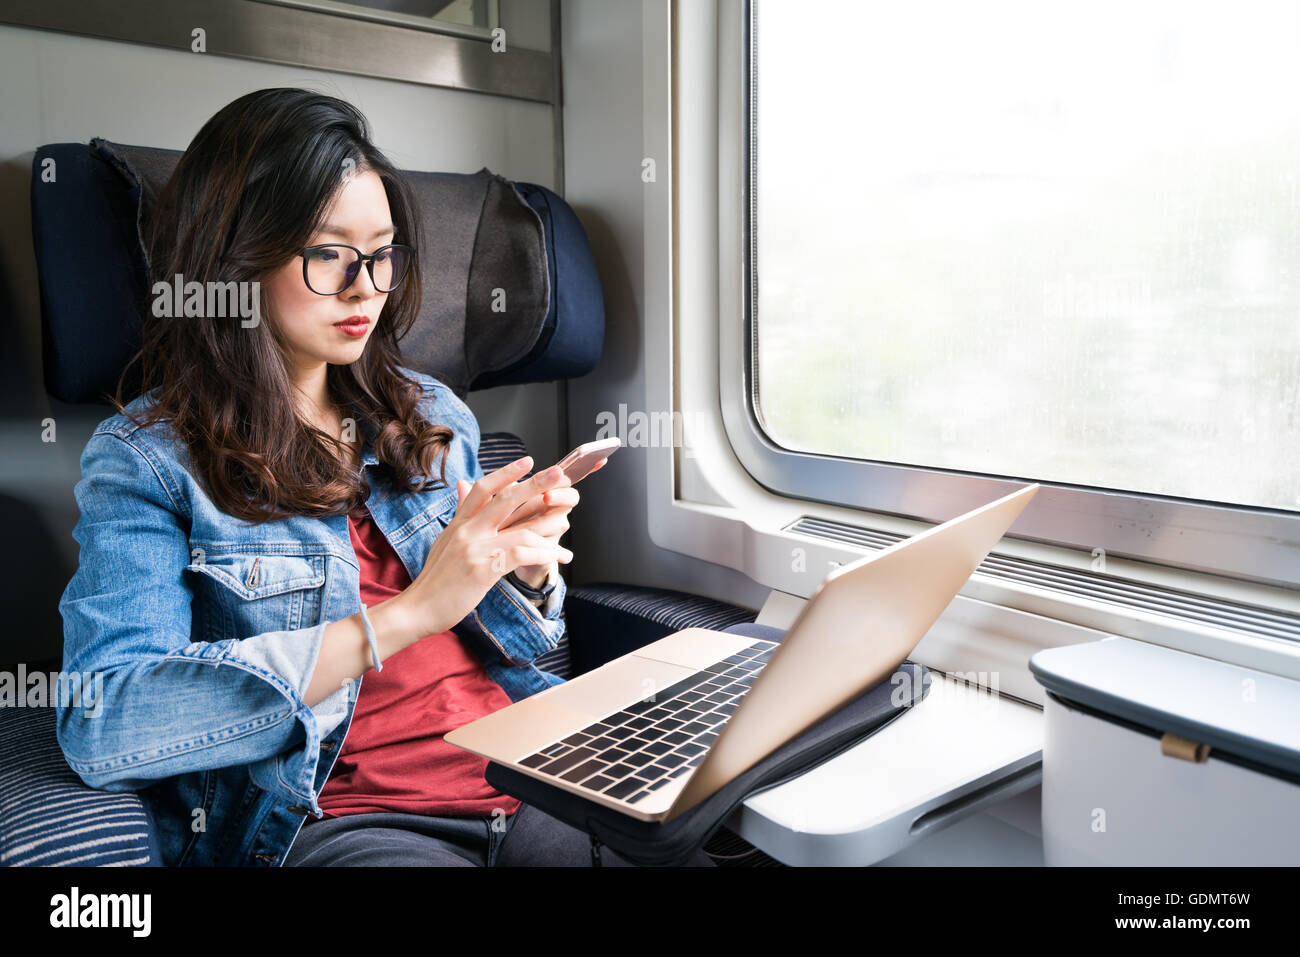 Cute Asian woman using smartphone and laptop on train, copy space on window, business travel or technology concept - Stock Image